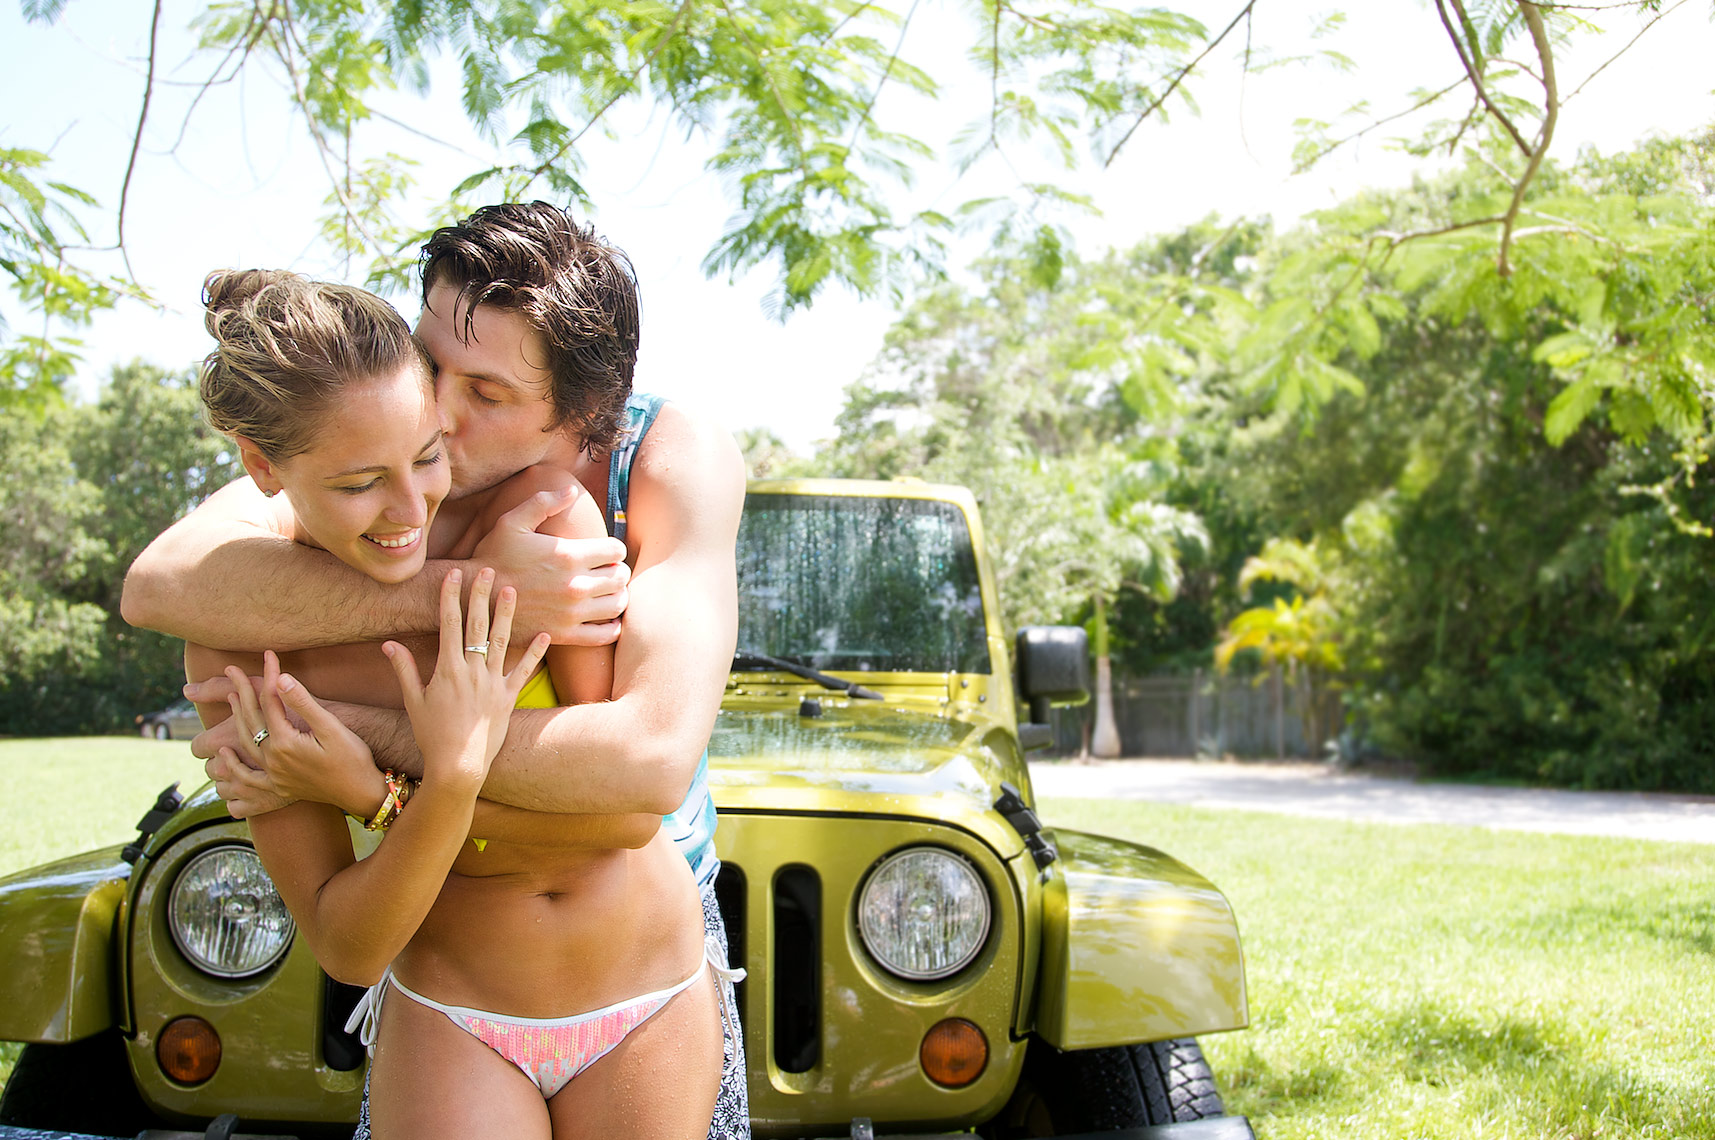 cuple embrace while washng car_Robert-Holland.jpg